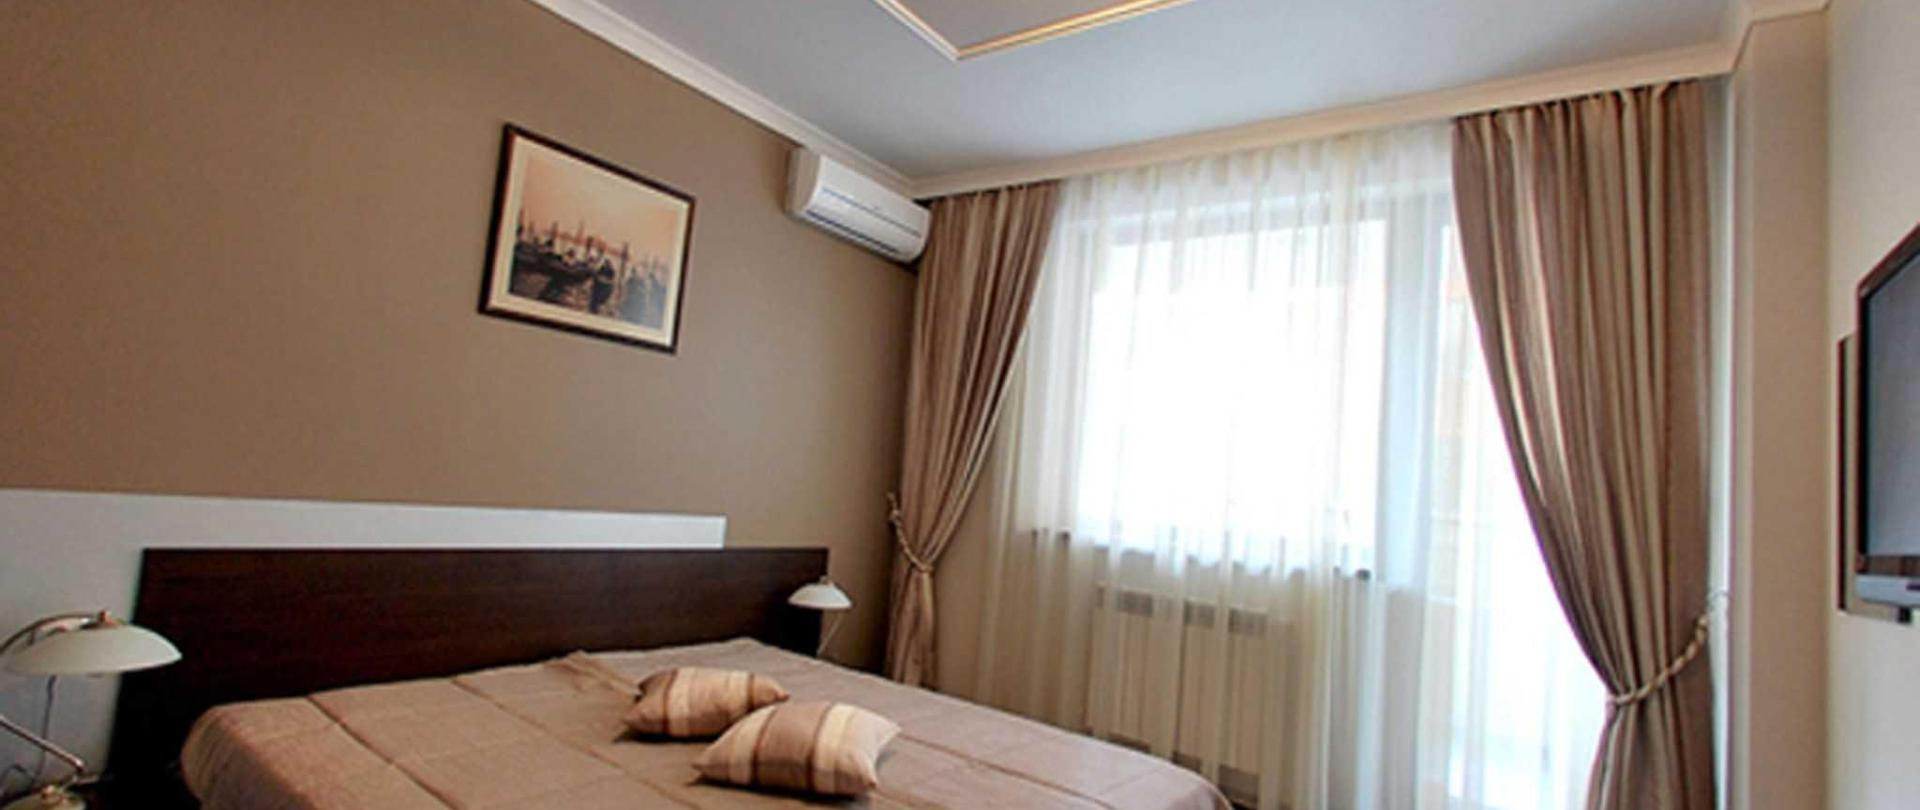 hotel_apartment_bedroom_1.jpg